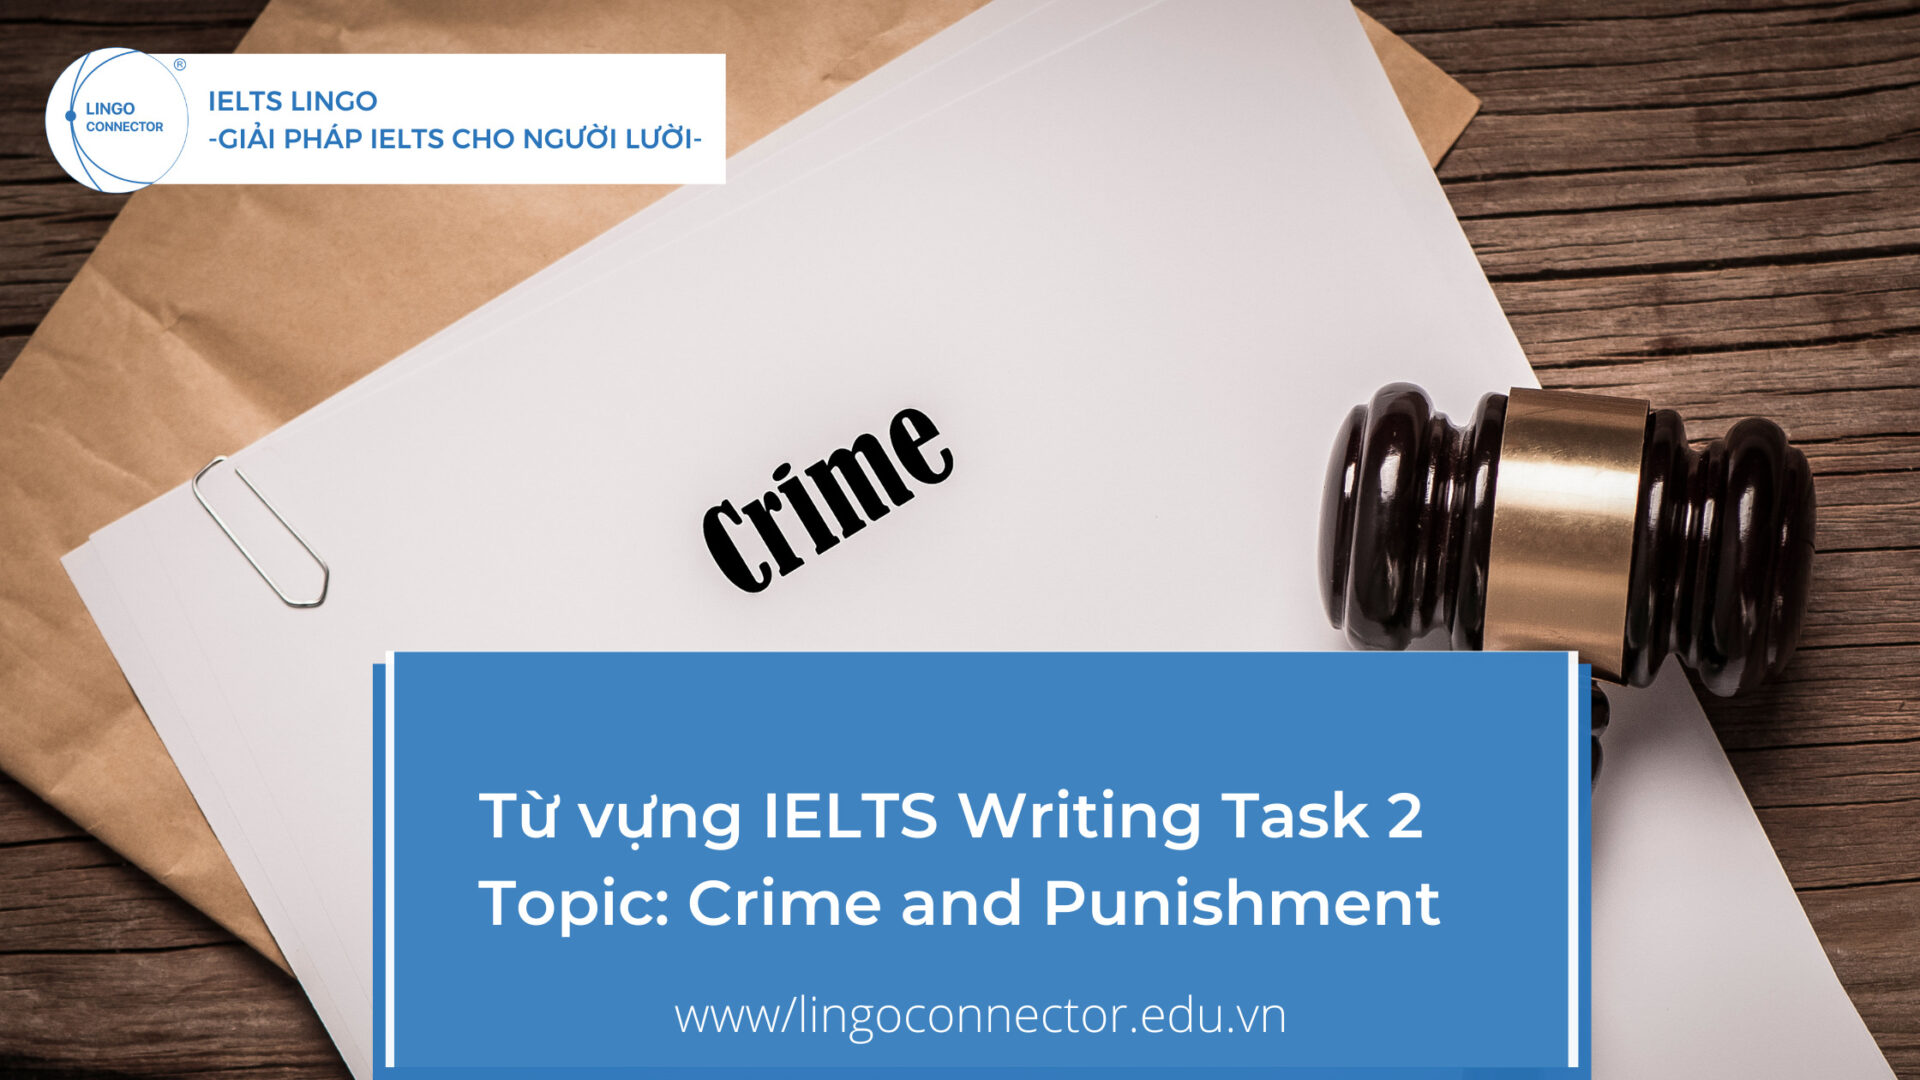 Từ vựng IELTS Writing Task 2 - Topic: Crime and Punishment